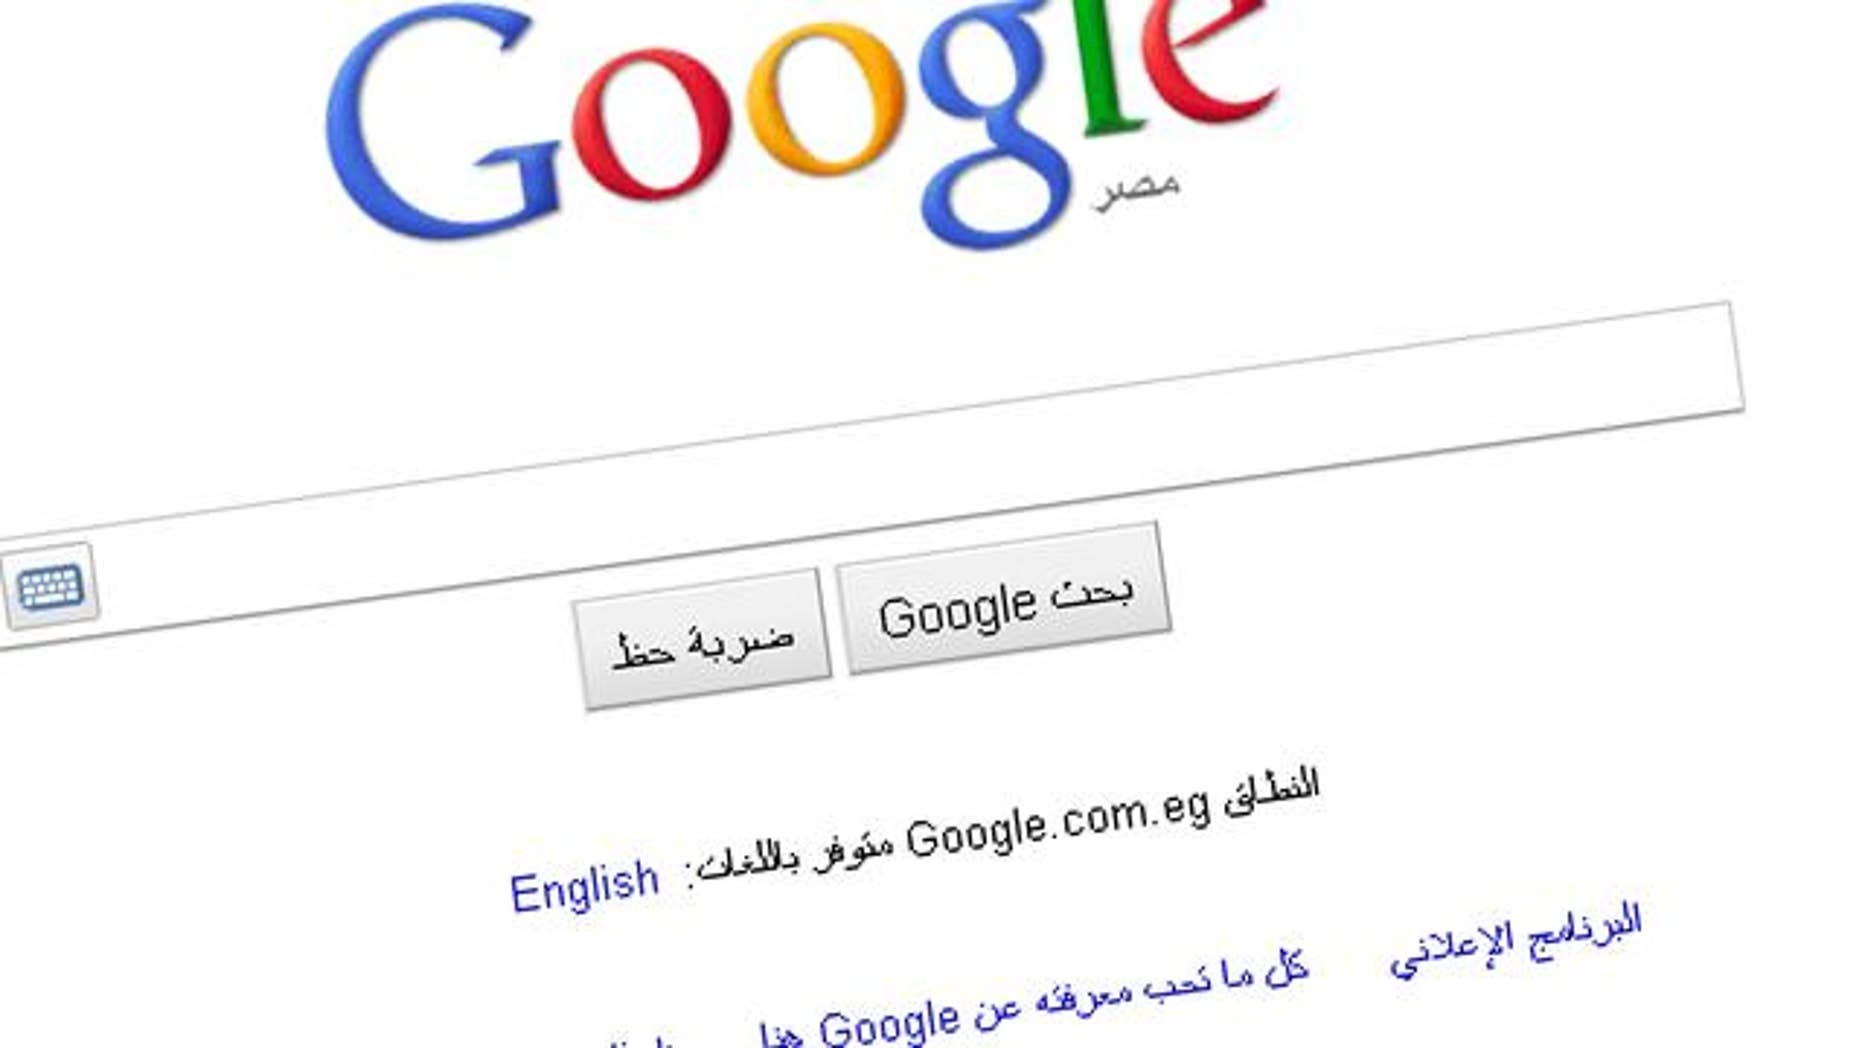 How much influence did Google have on the protests in Egypt?